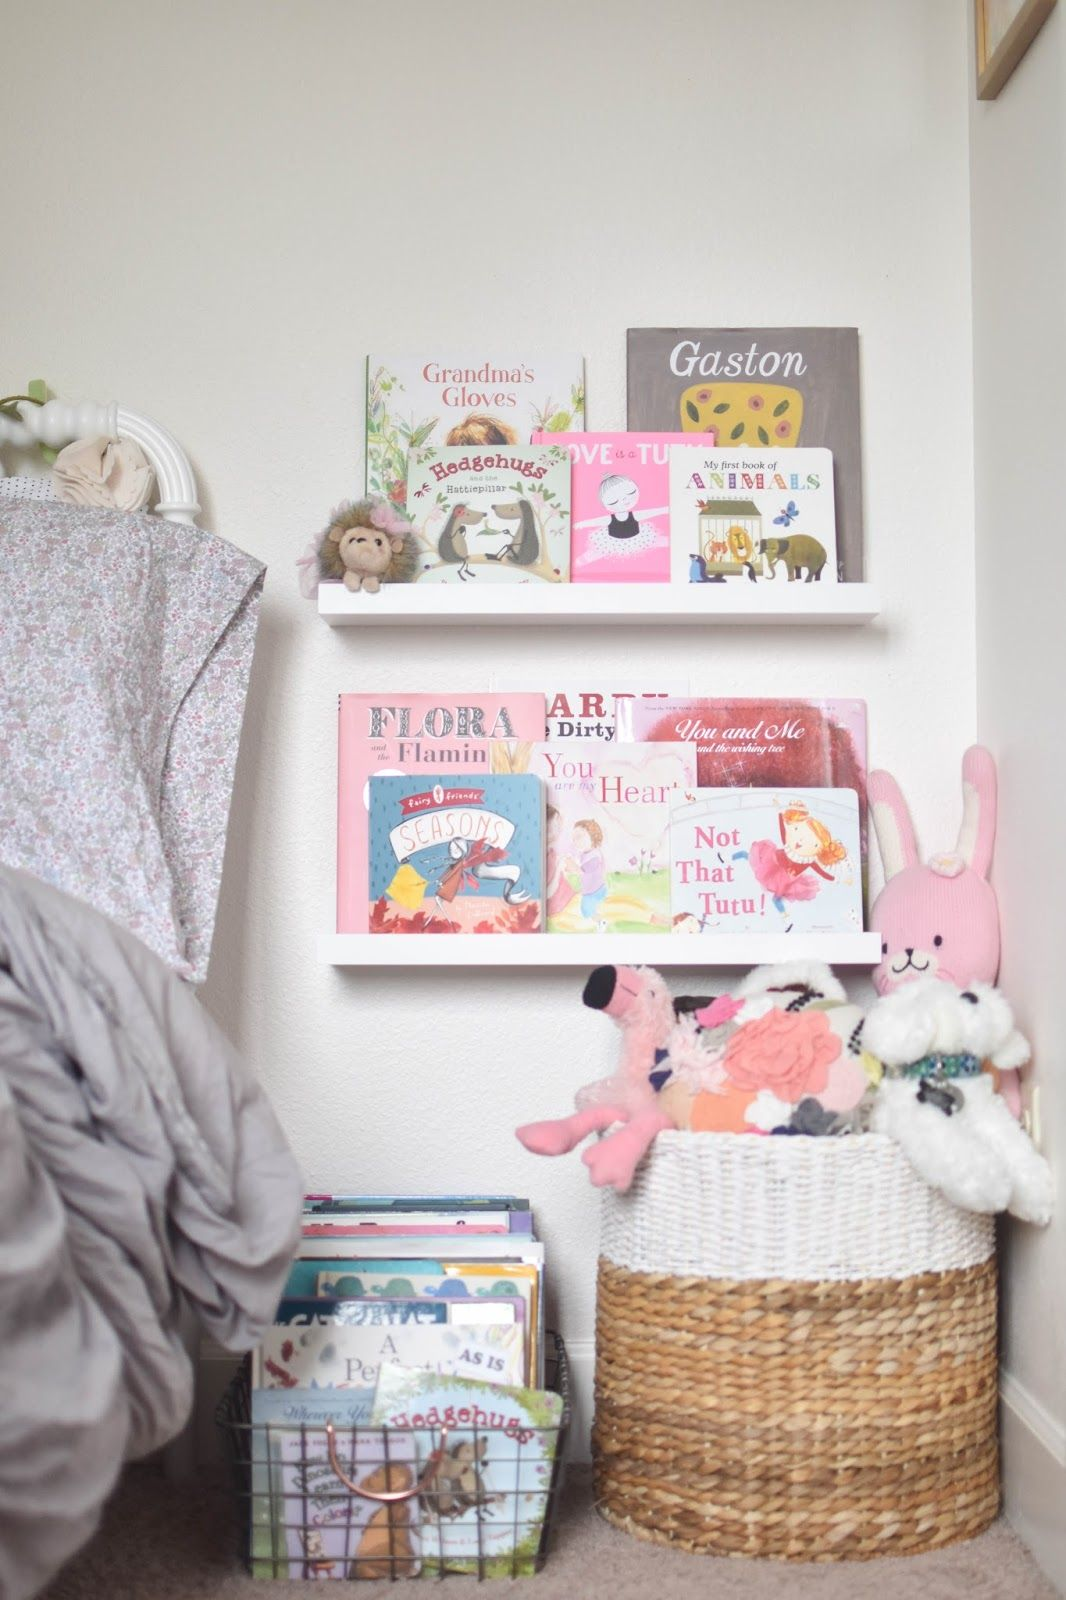 10 Year Bedroom Ideas: 25+ Amazing Girls Room Decor Ideas For Teenagers